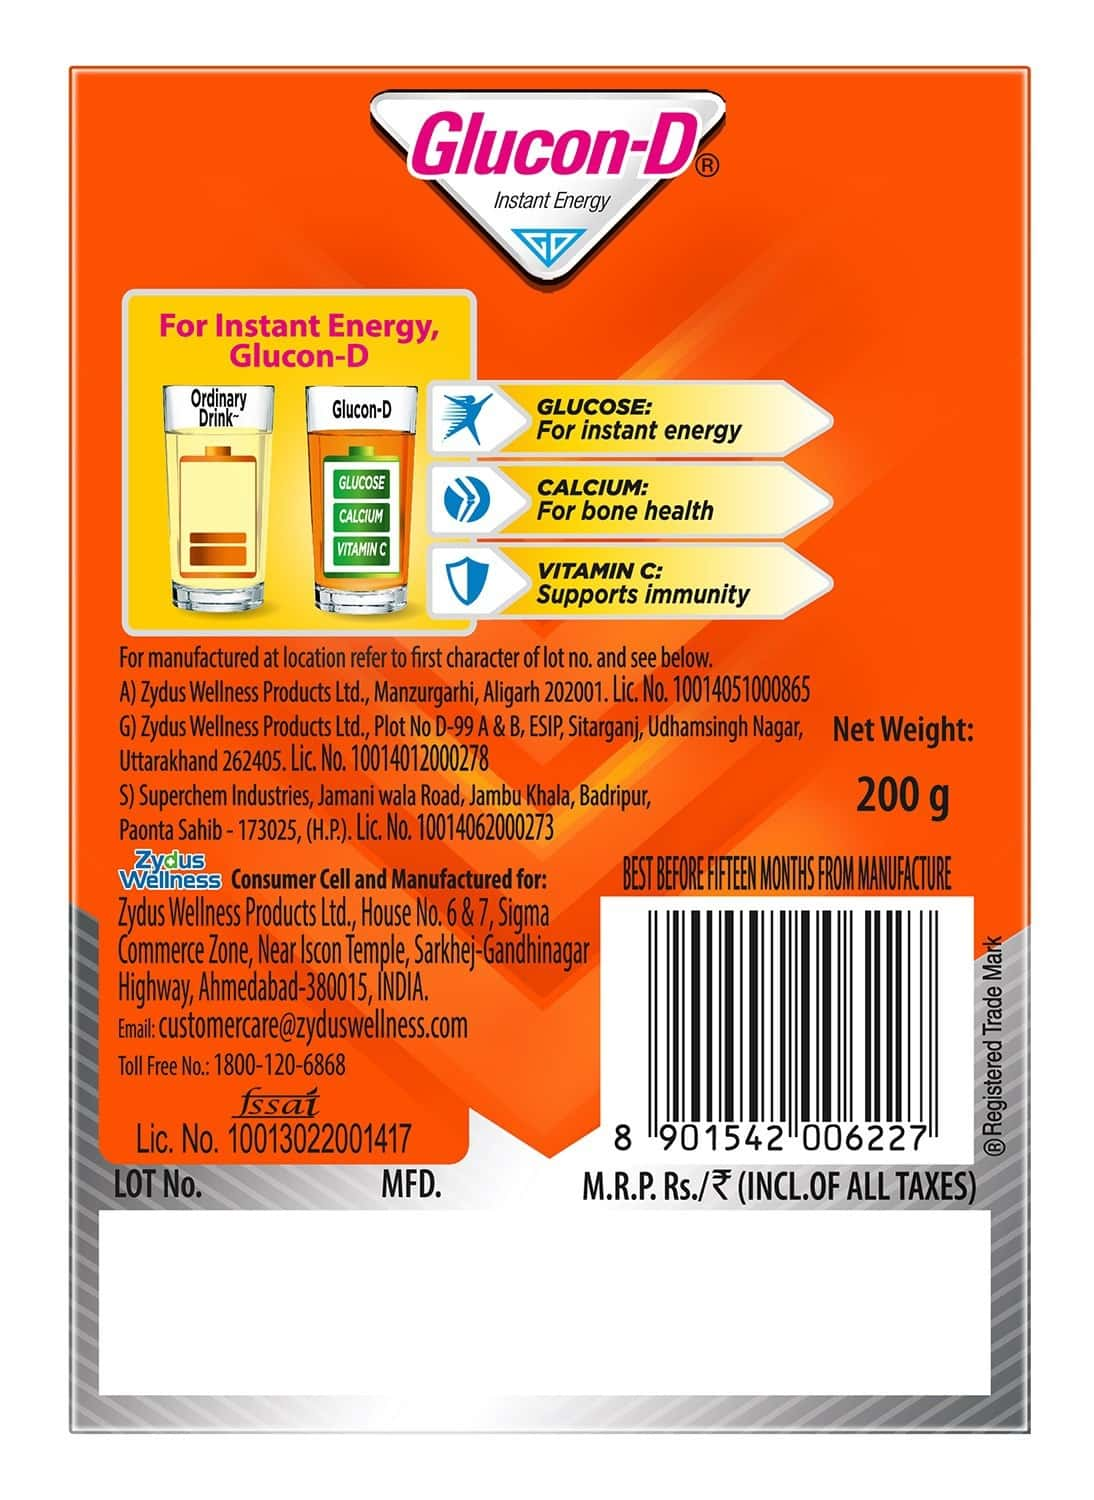 Glucon-d Tangy Orange Health Drink Refill Of 200 G